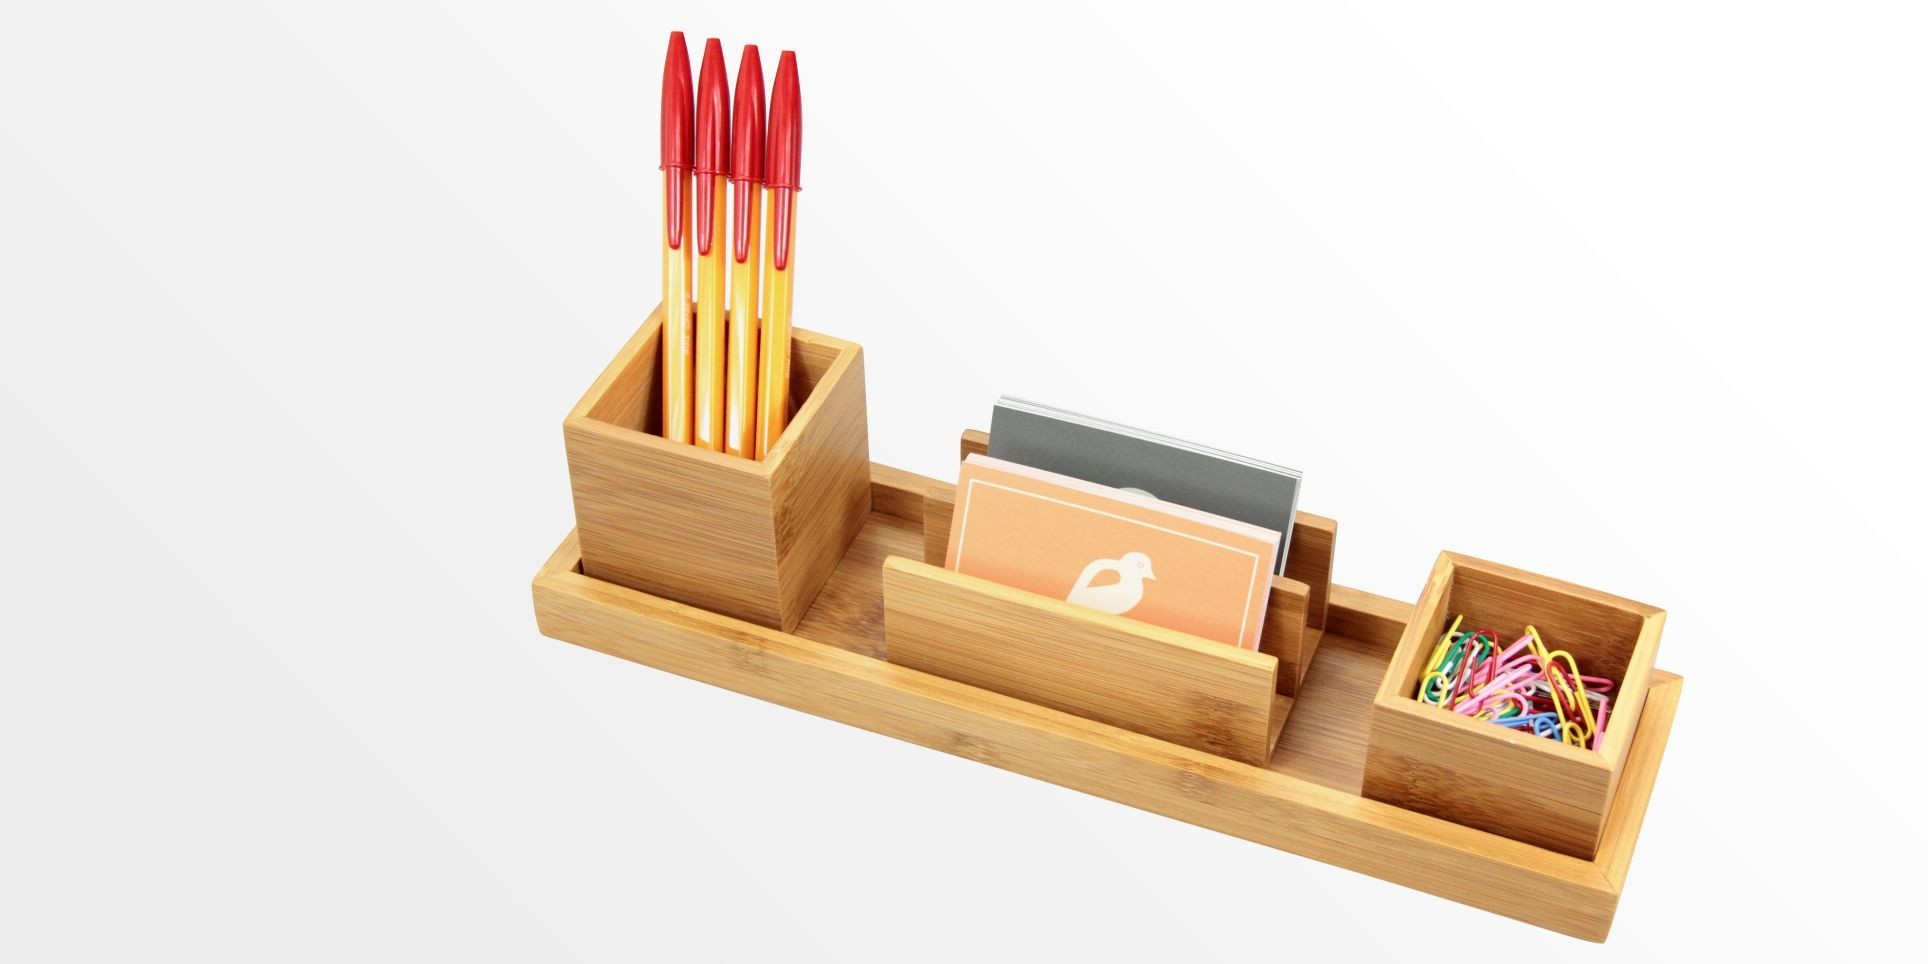 Desk organiser set of 4 pcs bamboo stationery organiser set office supplies - Desk stationery organiser ...